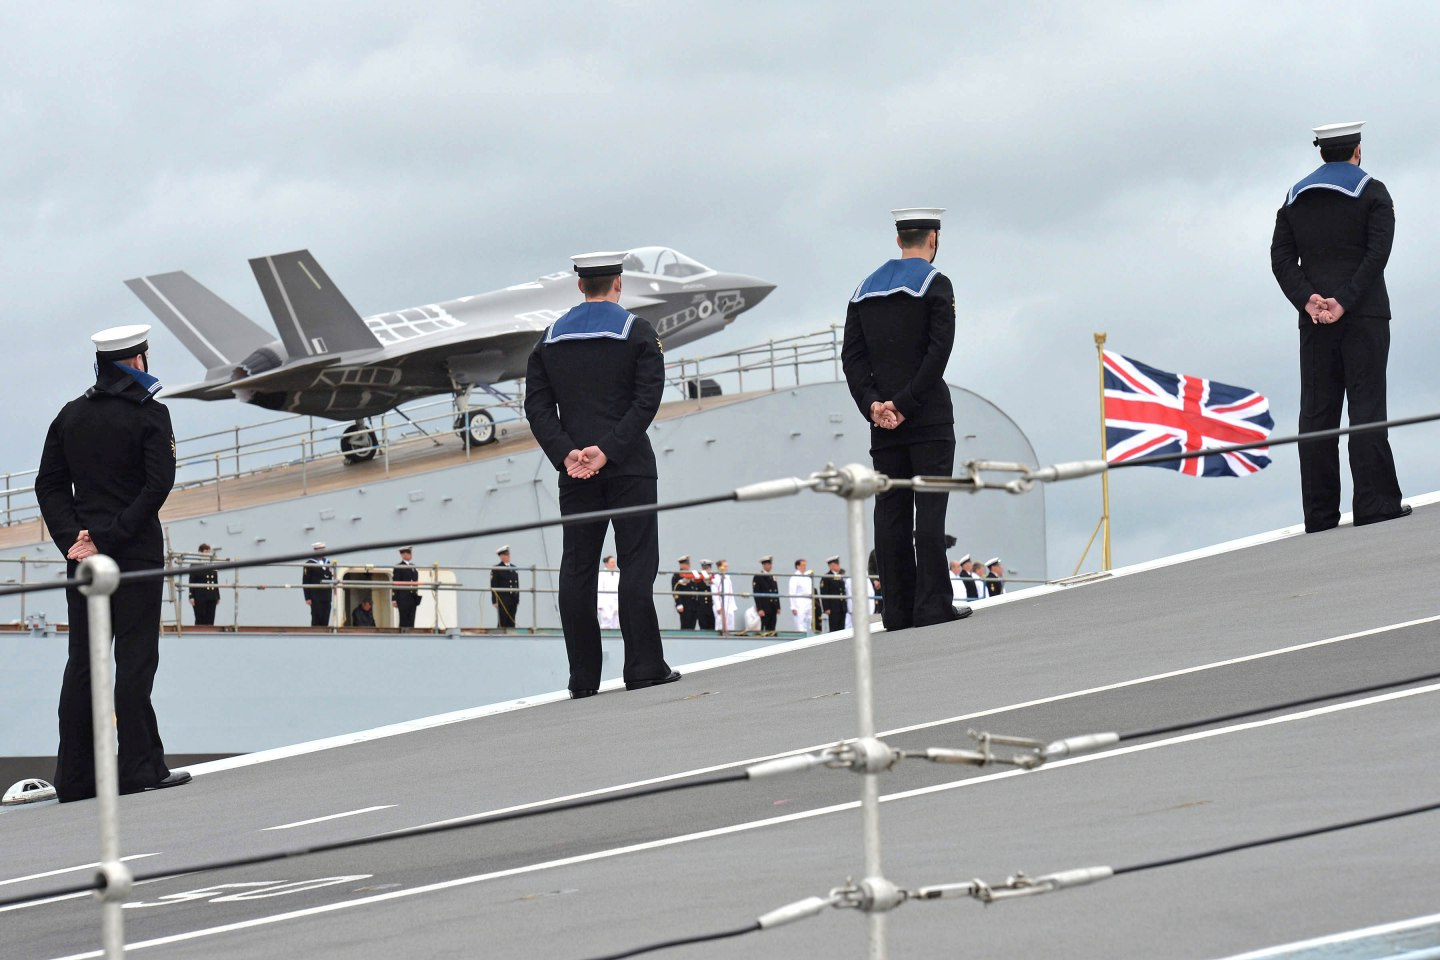 Pictured are events from the Queen Elizabeth naming ceremony conducted at Rosyth Dockyard. Pictured are Royal Navy Personnel aboard HMS Queen Elizabeth with an F-35B Aircraft in the background. Her Majesty The Queen officially named the UK's newest aircraft carrier at Rosyth, near Edinburgh, in a spectacular ceremony celebrating British Naval capability. The Prime Minister, Secretary State of Defence and the First Sea Lord joined the celebrations, along with allies from around the globe and more than 3, 500 people involved in the design and construction of the largest warship ever built in the UK. Organization: Royal Navy Object Name: MR140096098 Category: MOD Supplemental Categories: Carriers, Ships, Equipment, Royal Navy, People Keywords: Officer, Rating, Male, Sailor, Non-Identifiable, Personnel, Scotland, Clyde, HMNB, Dockyards, Union Jack , Queen Elizabeth, CVS, Aircraft Carrier, Rosyth, Naming Ceremony, Royal Navy, Ship, Carrier, CVF, Queen Elizabeth Class, QE Class, HMS Queen Elizabeth, R08, Royal Air Force, RAF, Combat, F-35B, Lightning II, Joint Strike Fighter, JSF Country: UK